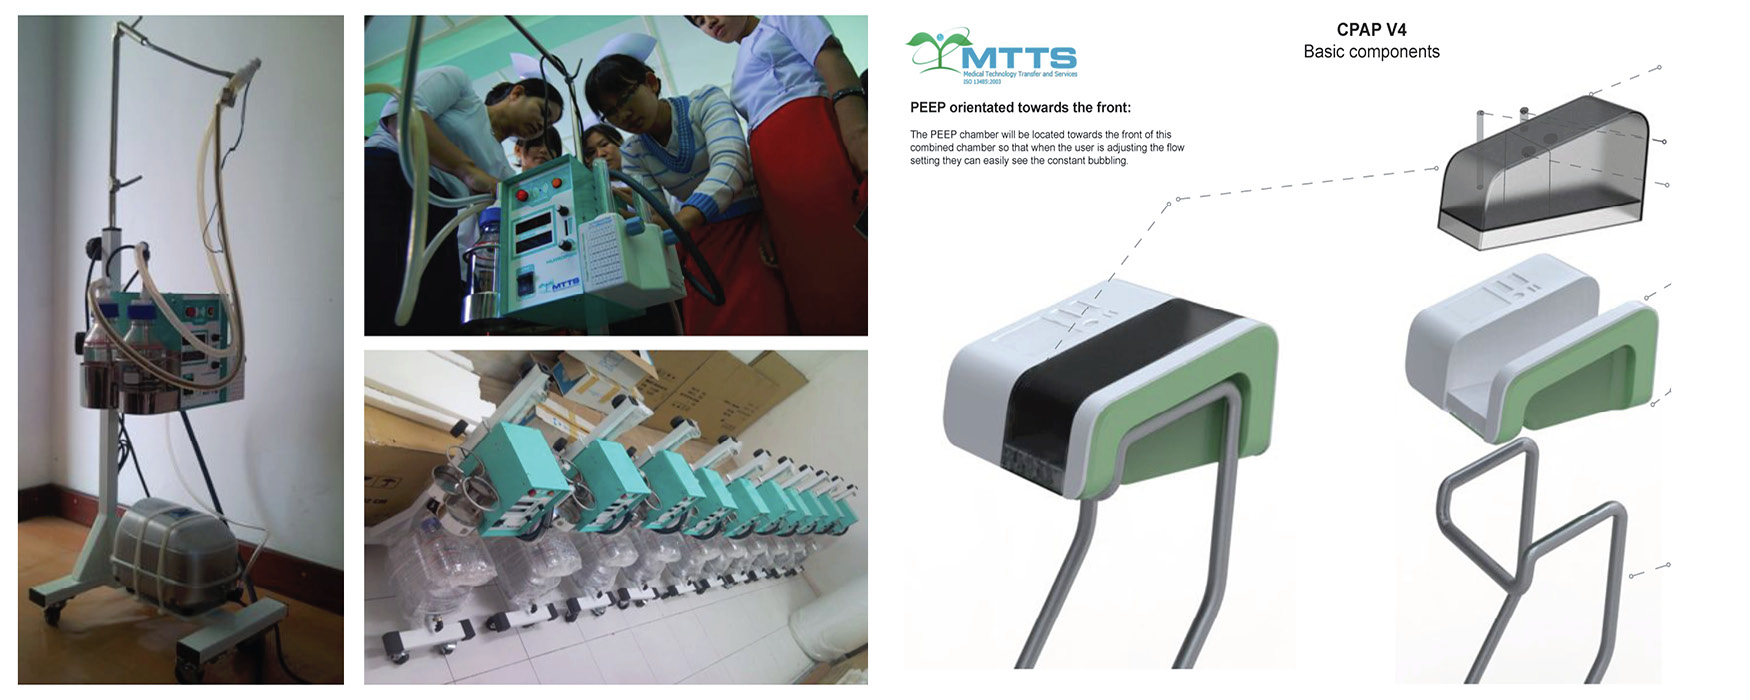 Left: The MTTS CPAP before. Right: The new MTTS CPAP in-development. Images courtesy MTTS.